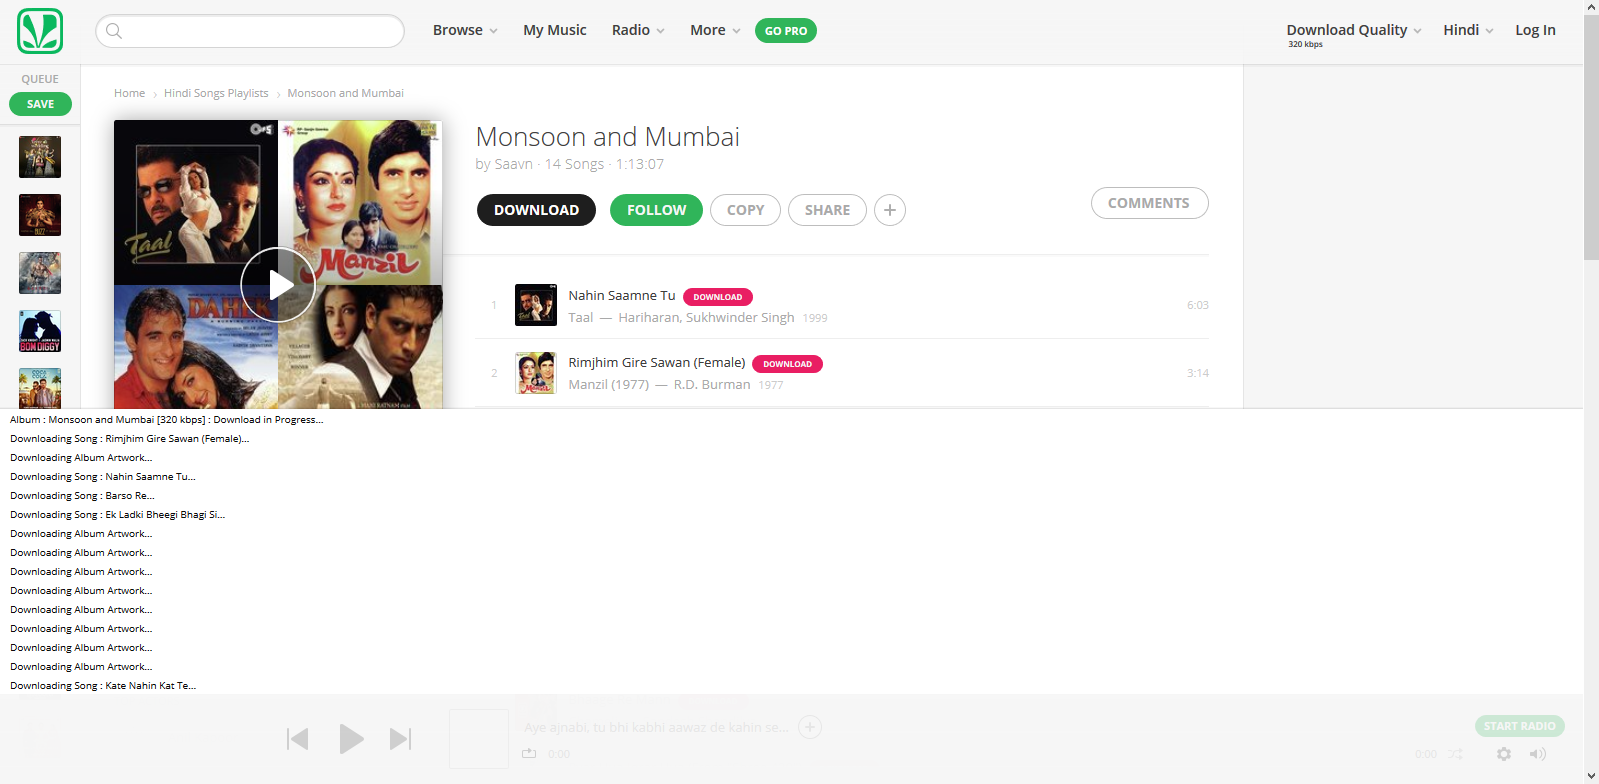 GitHub - naqushab/saavn-downloader-extension: Chrome